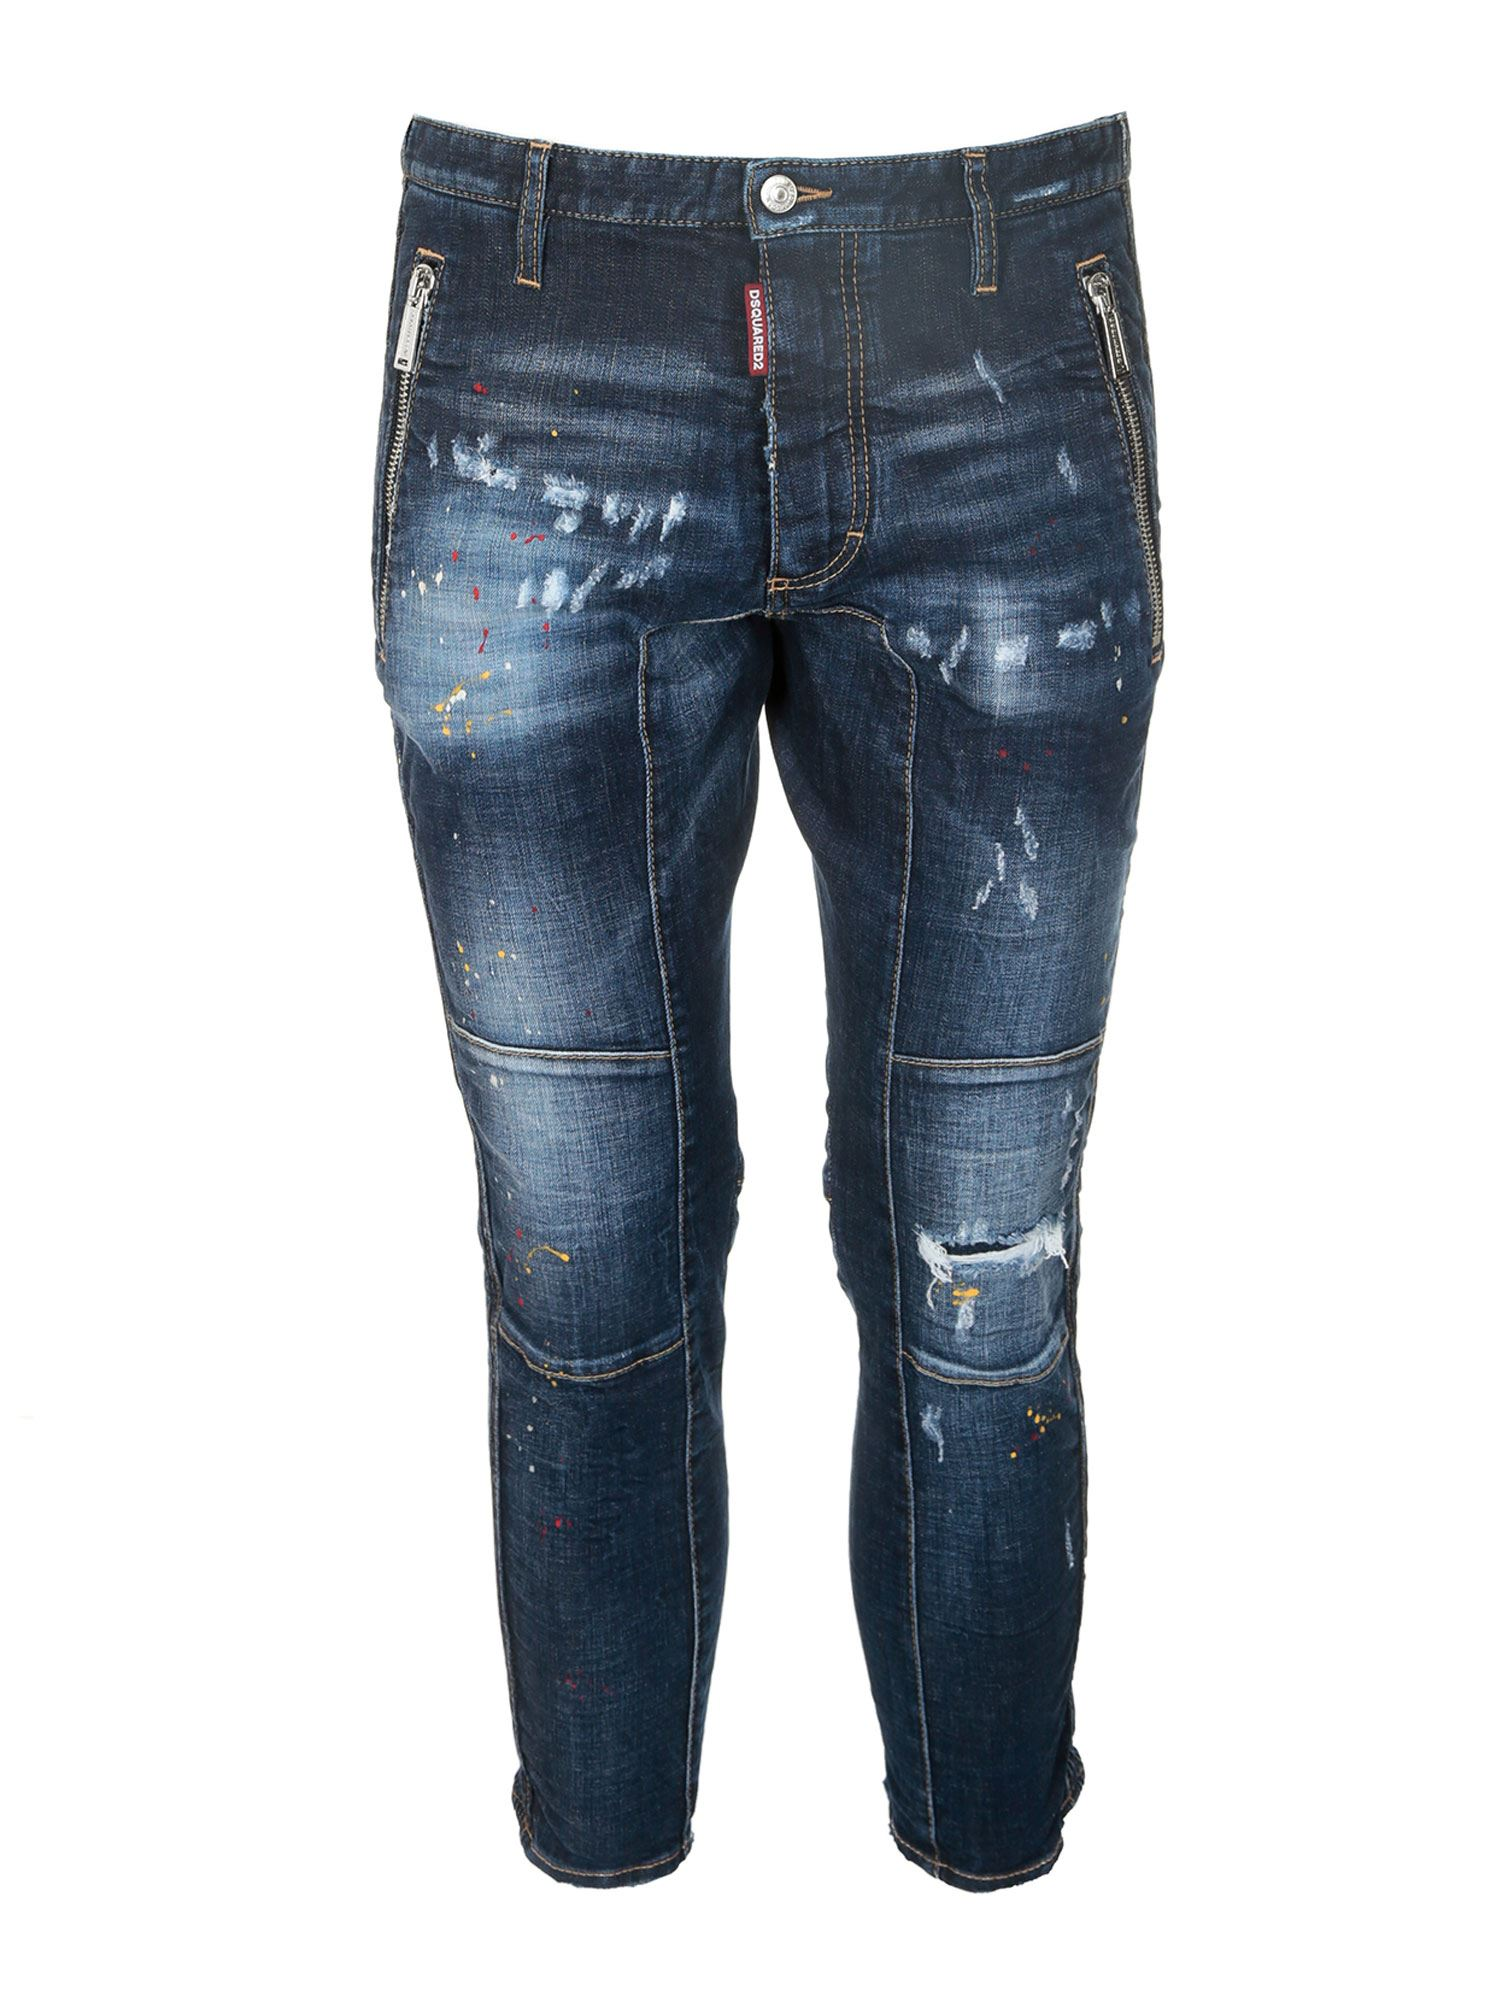 Dsquared2 Denims SEXY BIKER JEANS IN BLUE